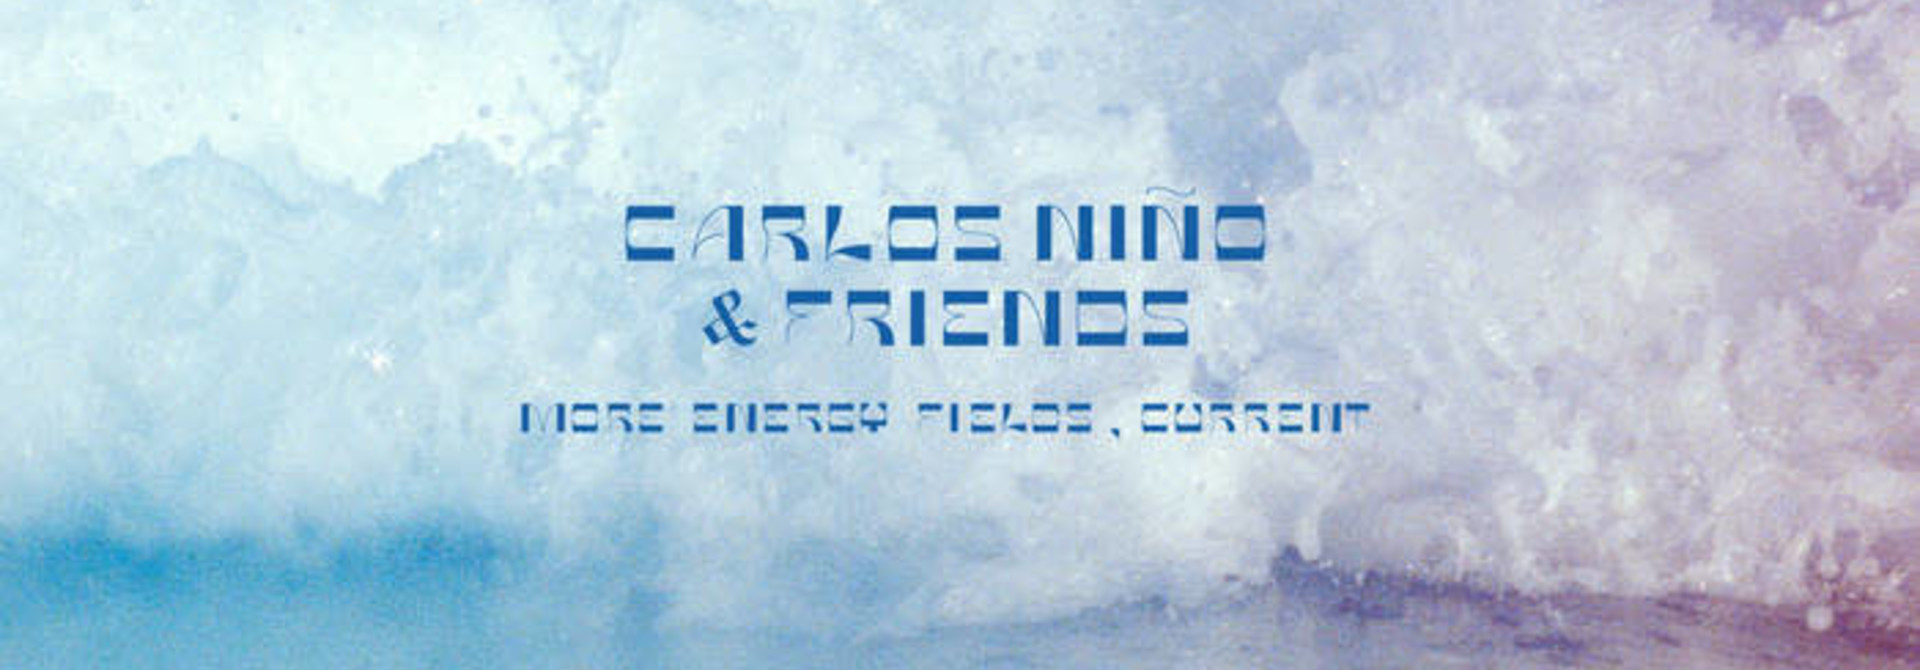 Carlos Nino & Friends • More Energy Fields, Current